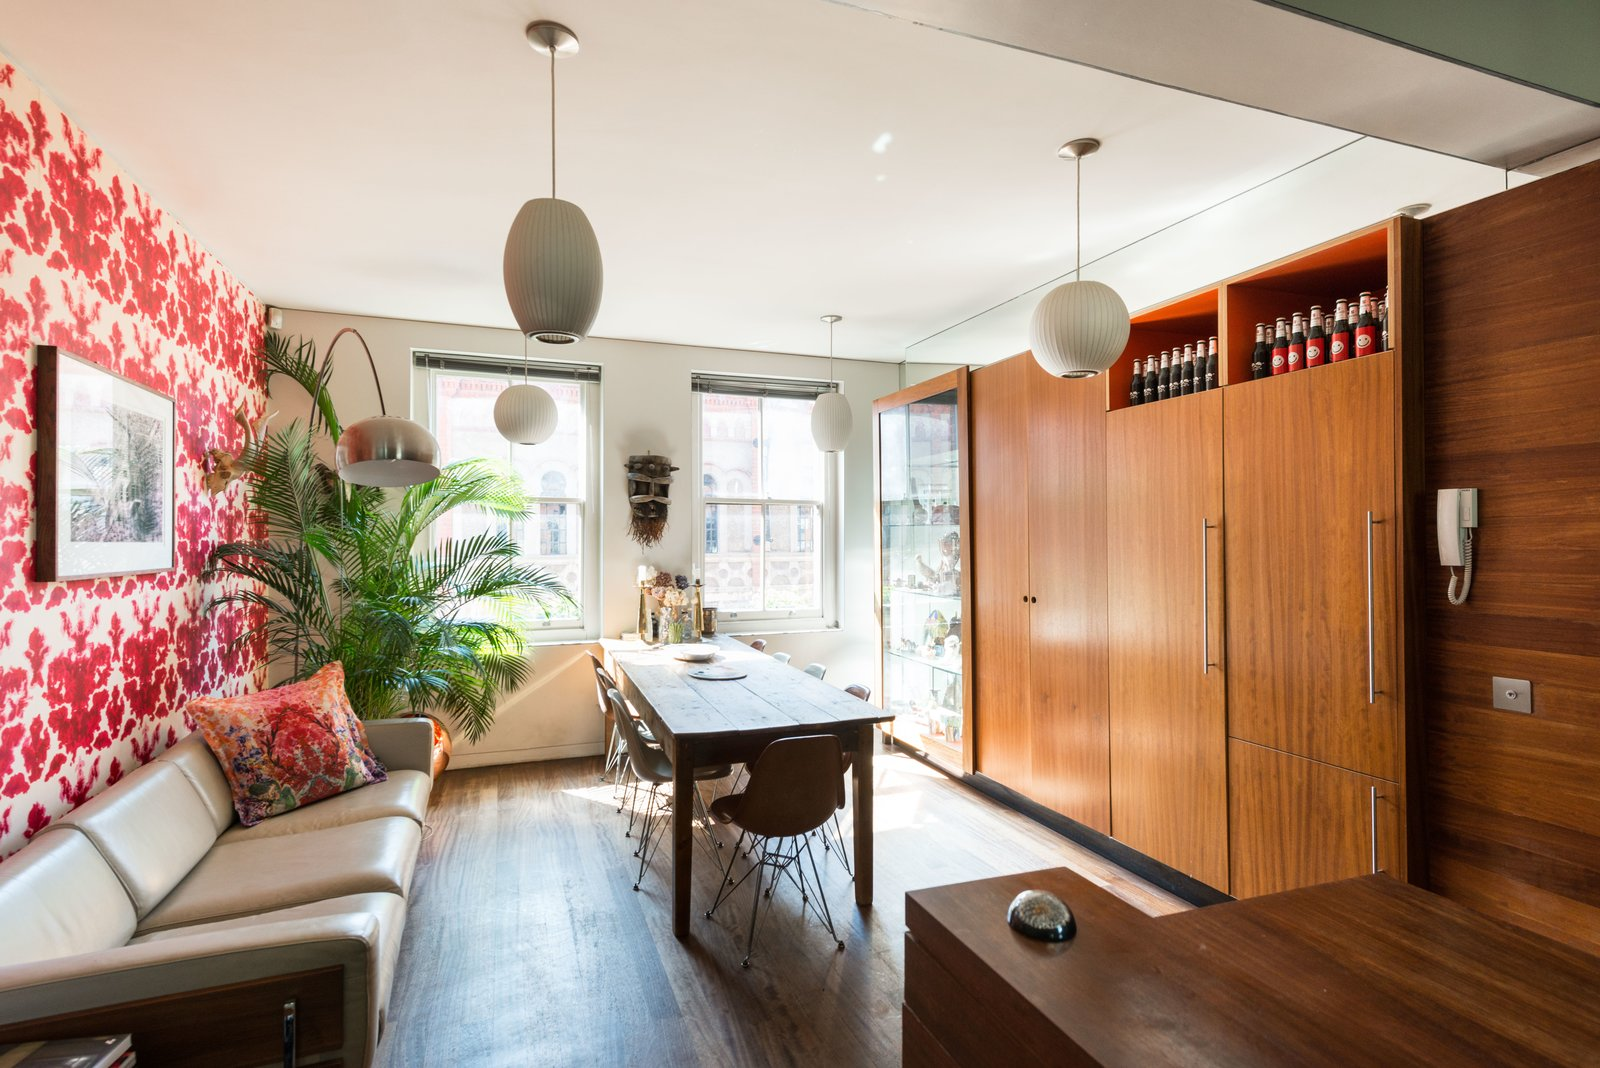 The dining space and kitchen are connected in a long, narrow section, and offer floor-to-ceiling cupboards.